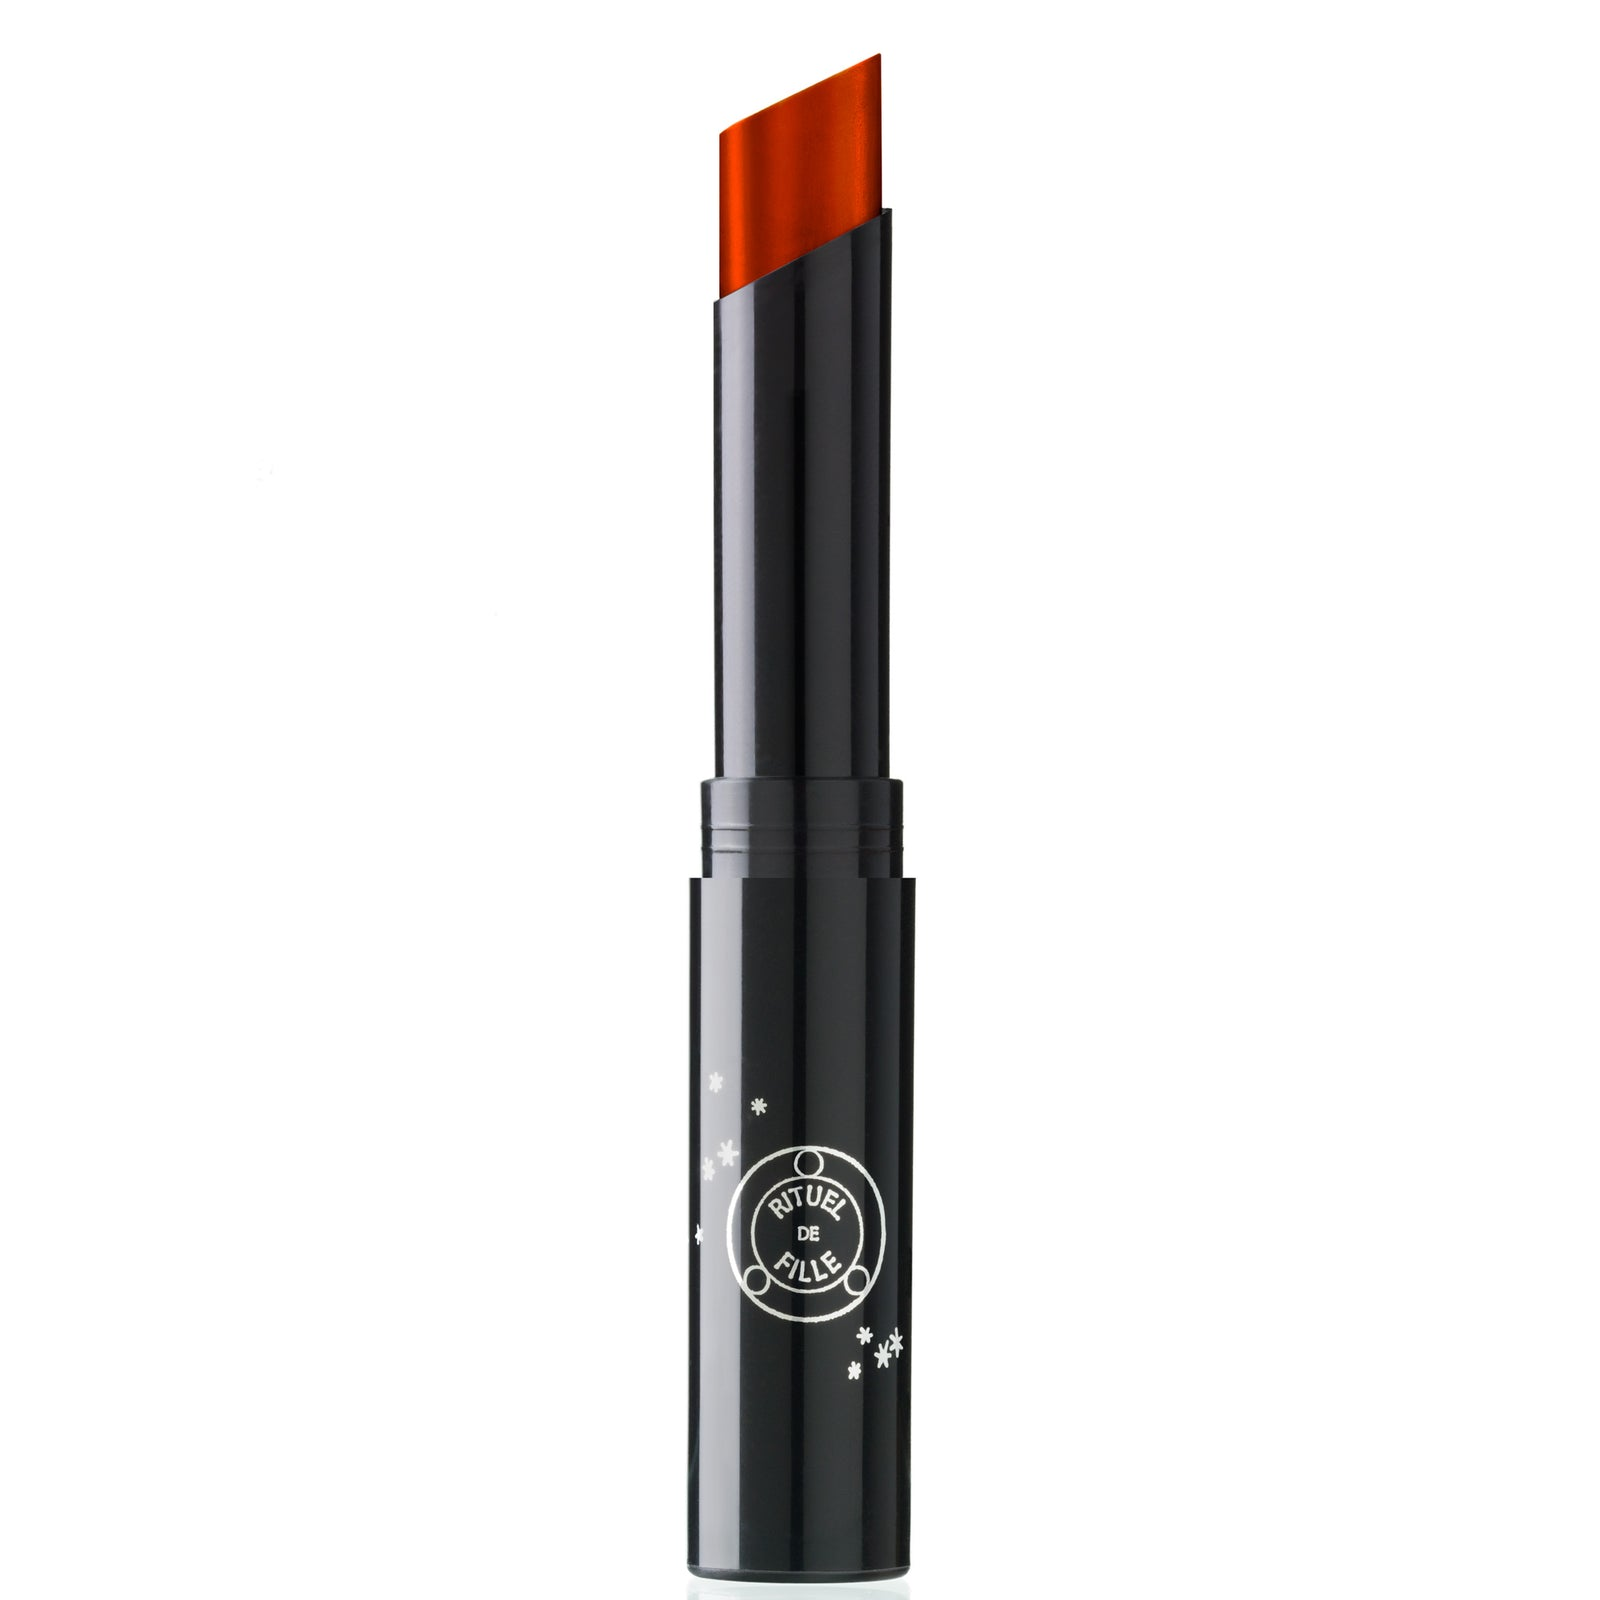 Bloodroot Enchanted Lip Sheer orange natural lipstick annatto cruelty free makeup packaging